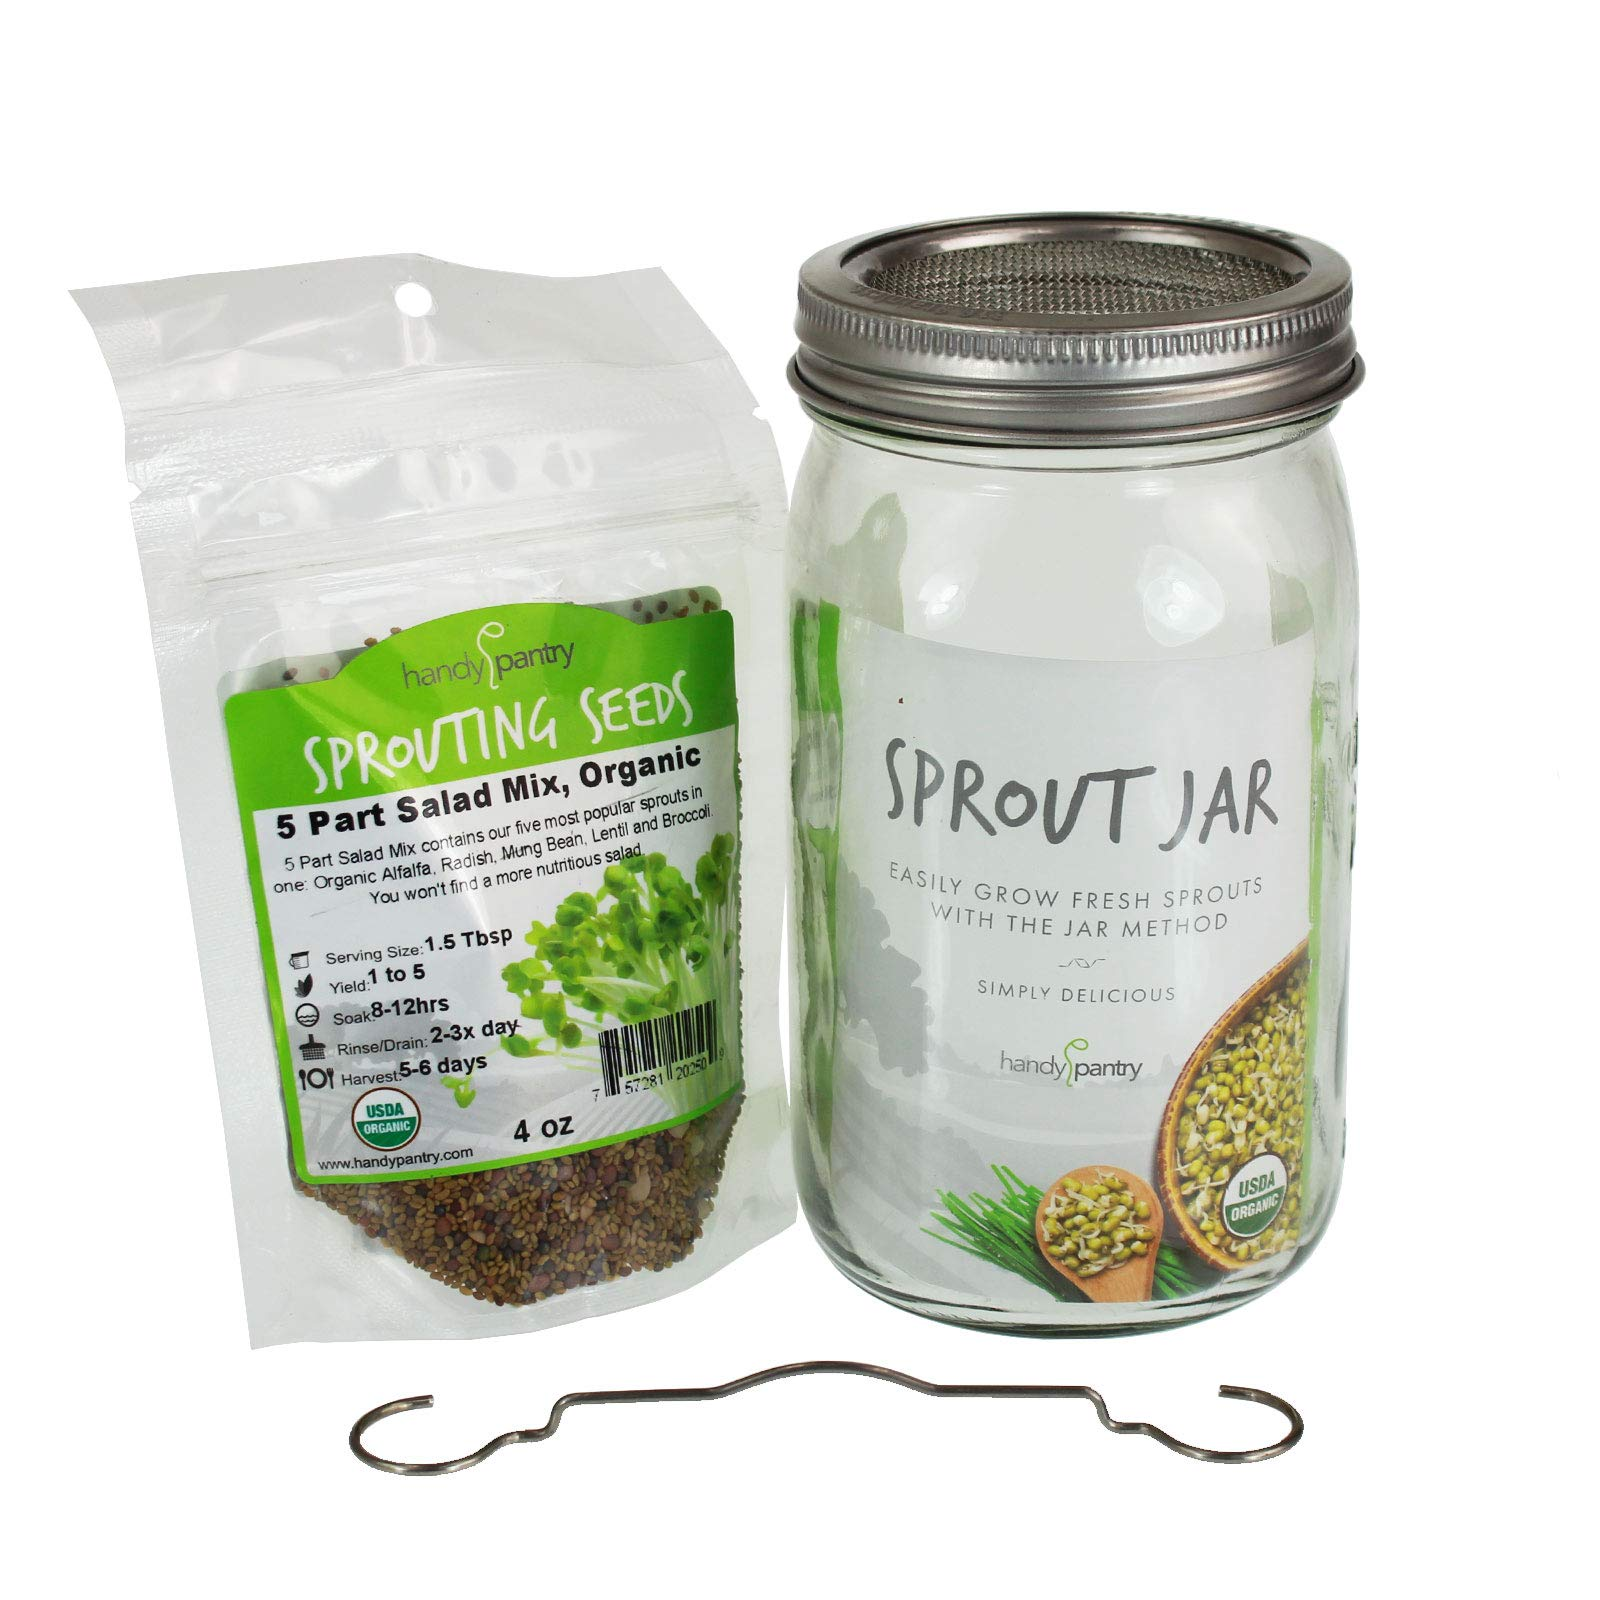 Complete home kitchen sprouting system. Includes wide mouth quart jar, 316 stainless steel sprouting ring with mesh strainer, a counter drain stand, Protein Powerhouse, organic sprouting seed mix